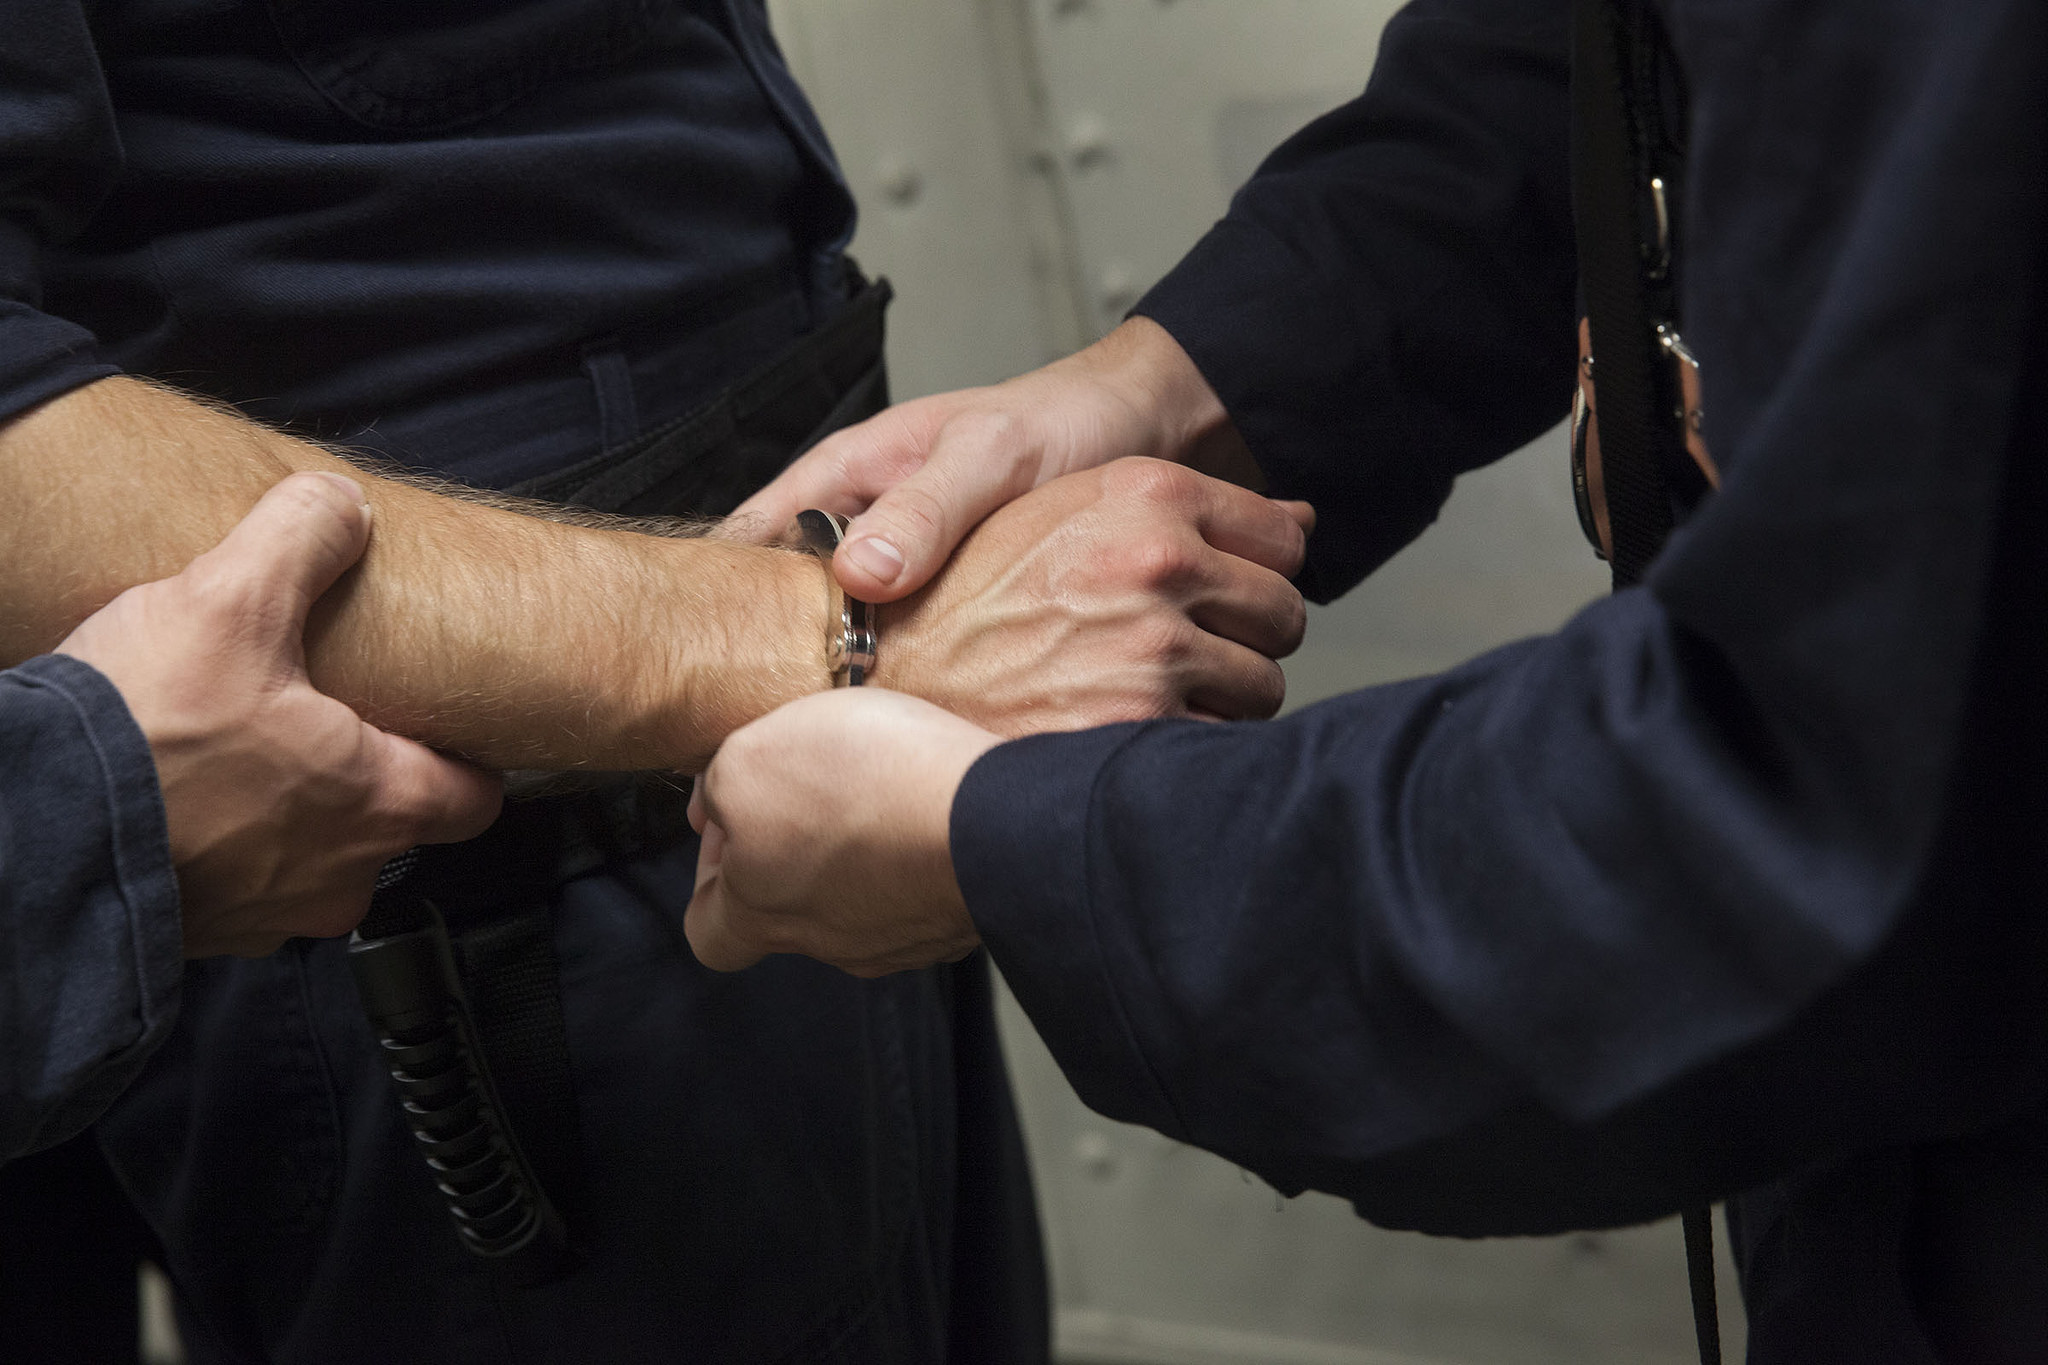 certified criminal law specialist in Phoenix, Arizona - officers restraining a person with handcuffs